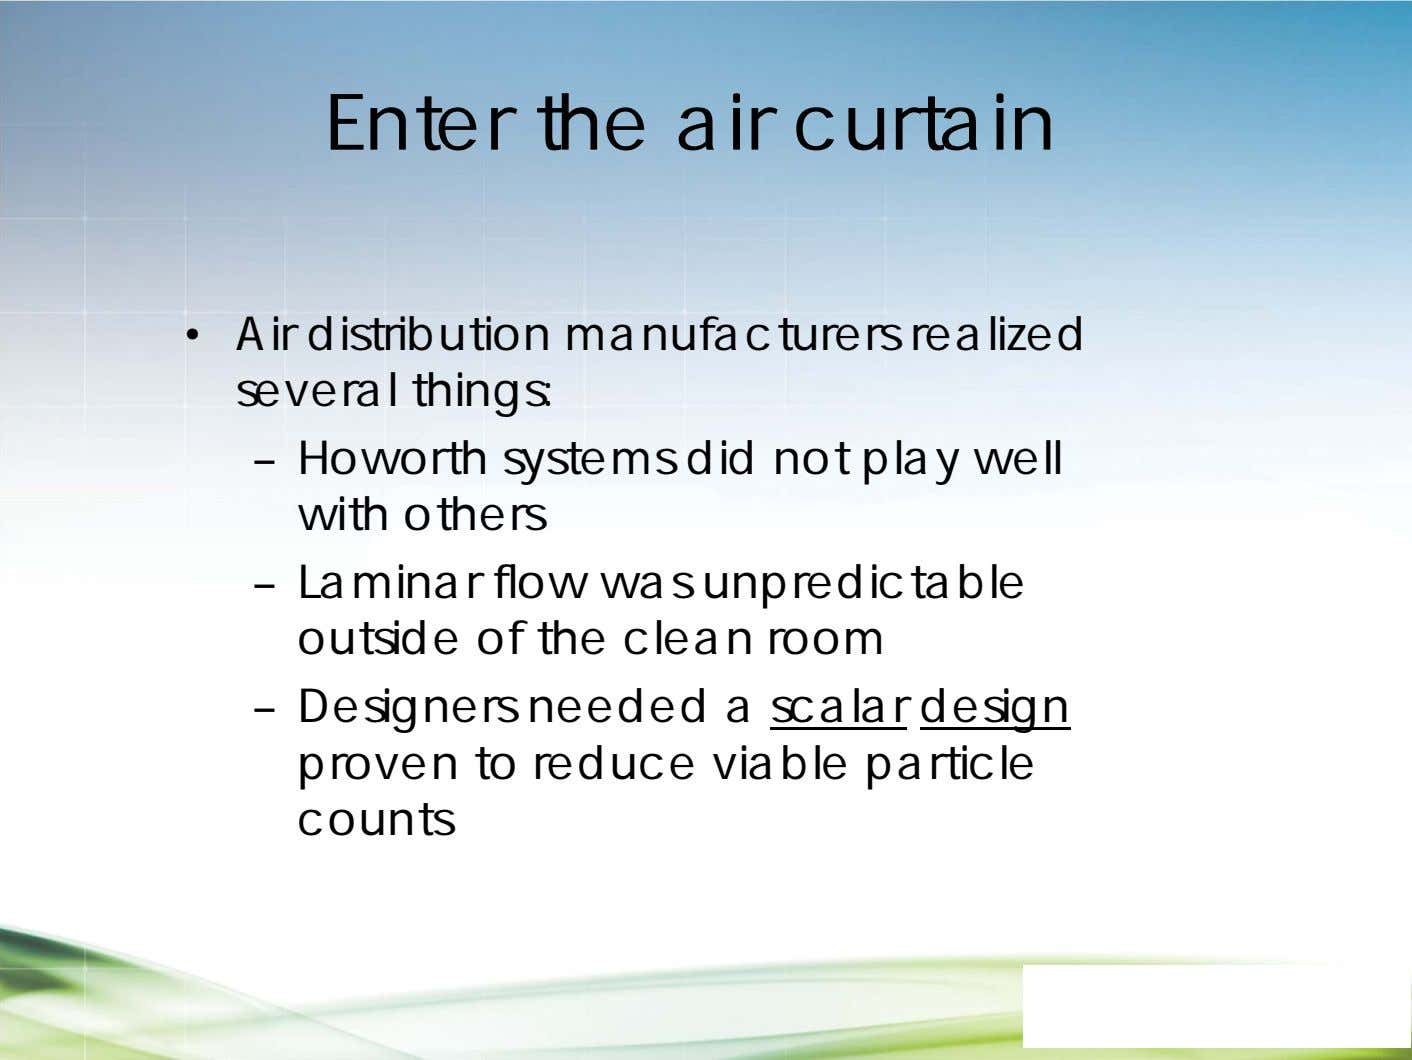 Enter the air curtain • Air distribution manufacturers realized several things: – Howorth systems did